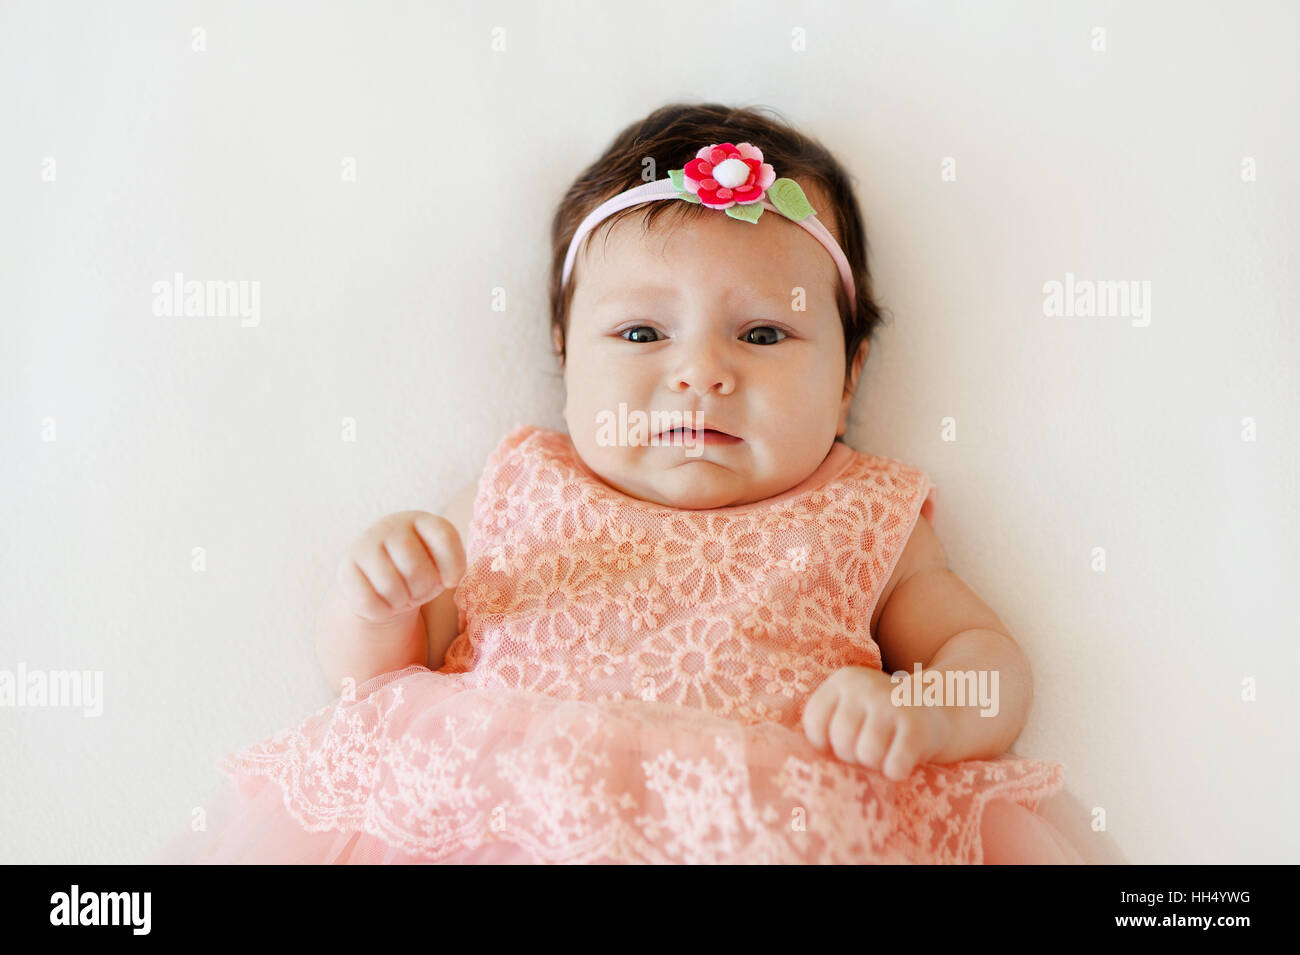 cute baby girl with sad face lies on a white blanket stock photo